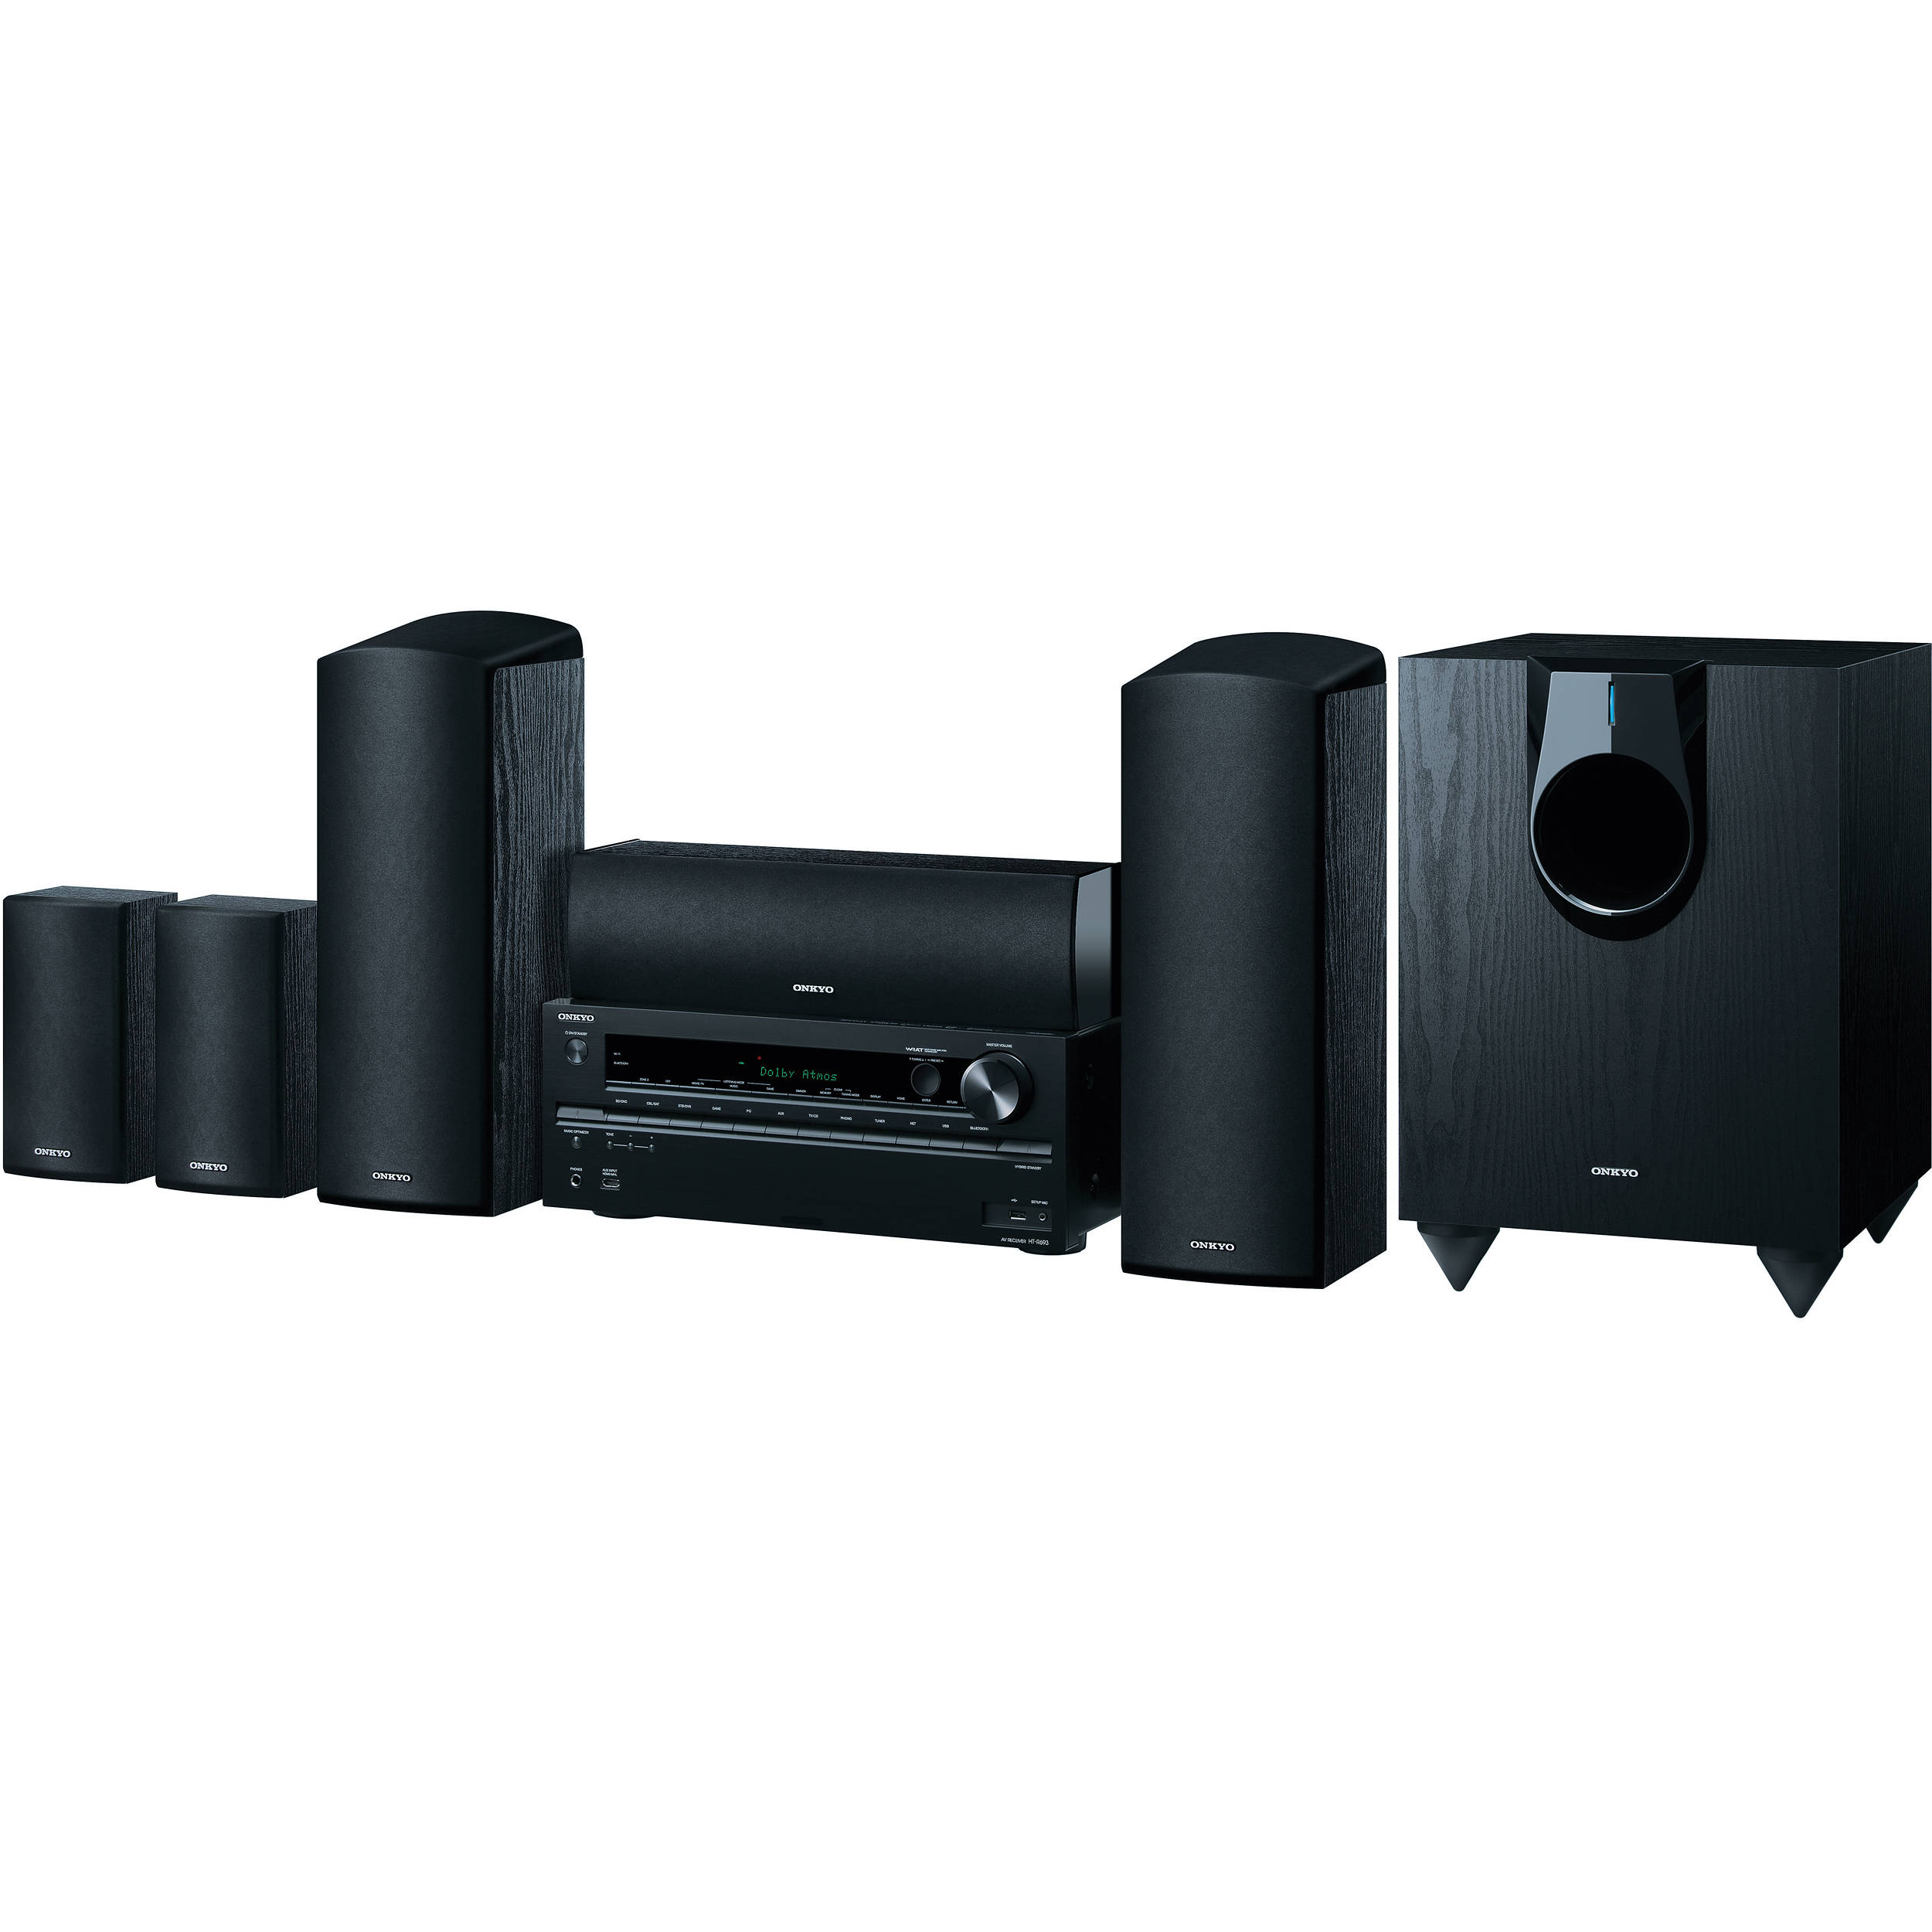 onkyo ht s7700 5 1 2 channel network home theater system